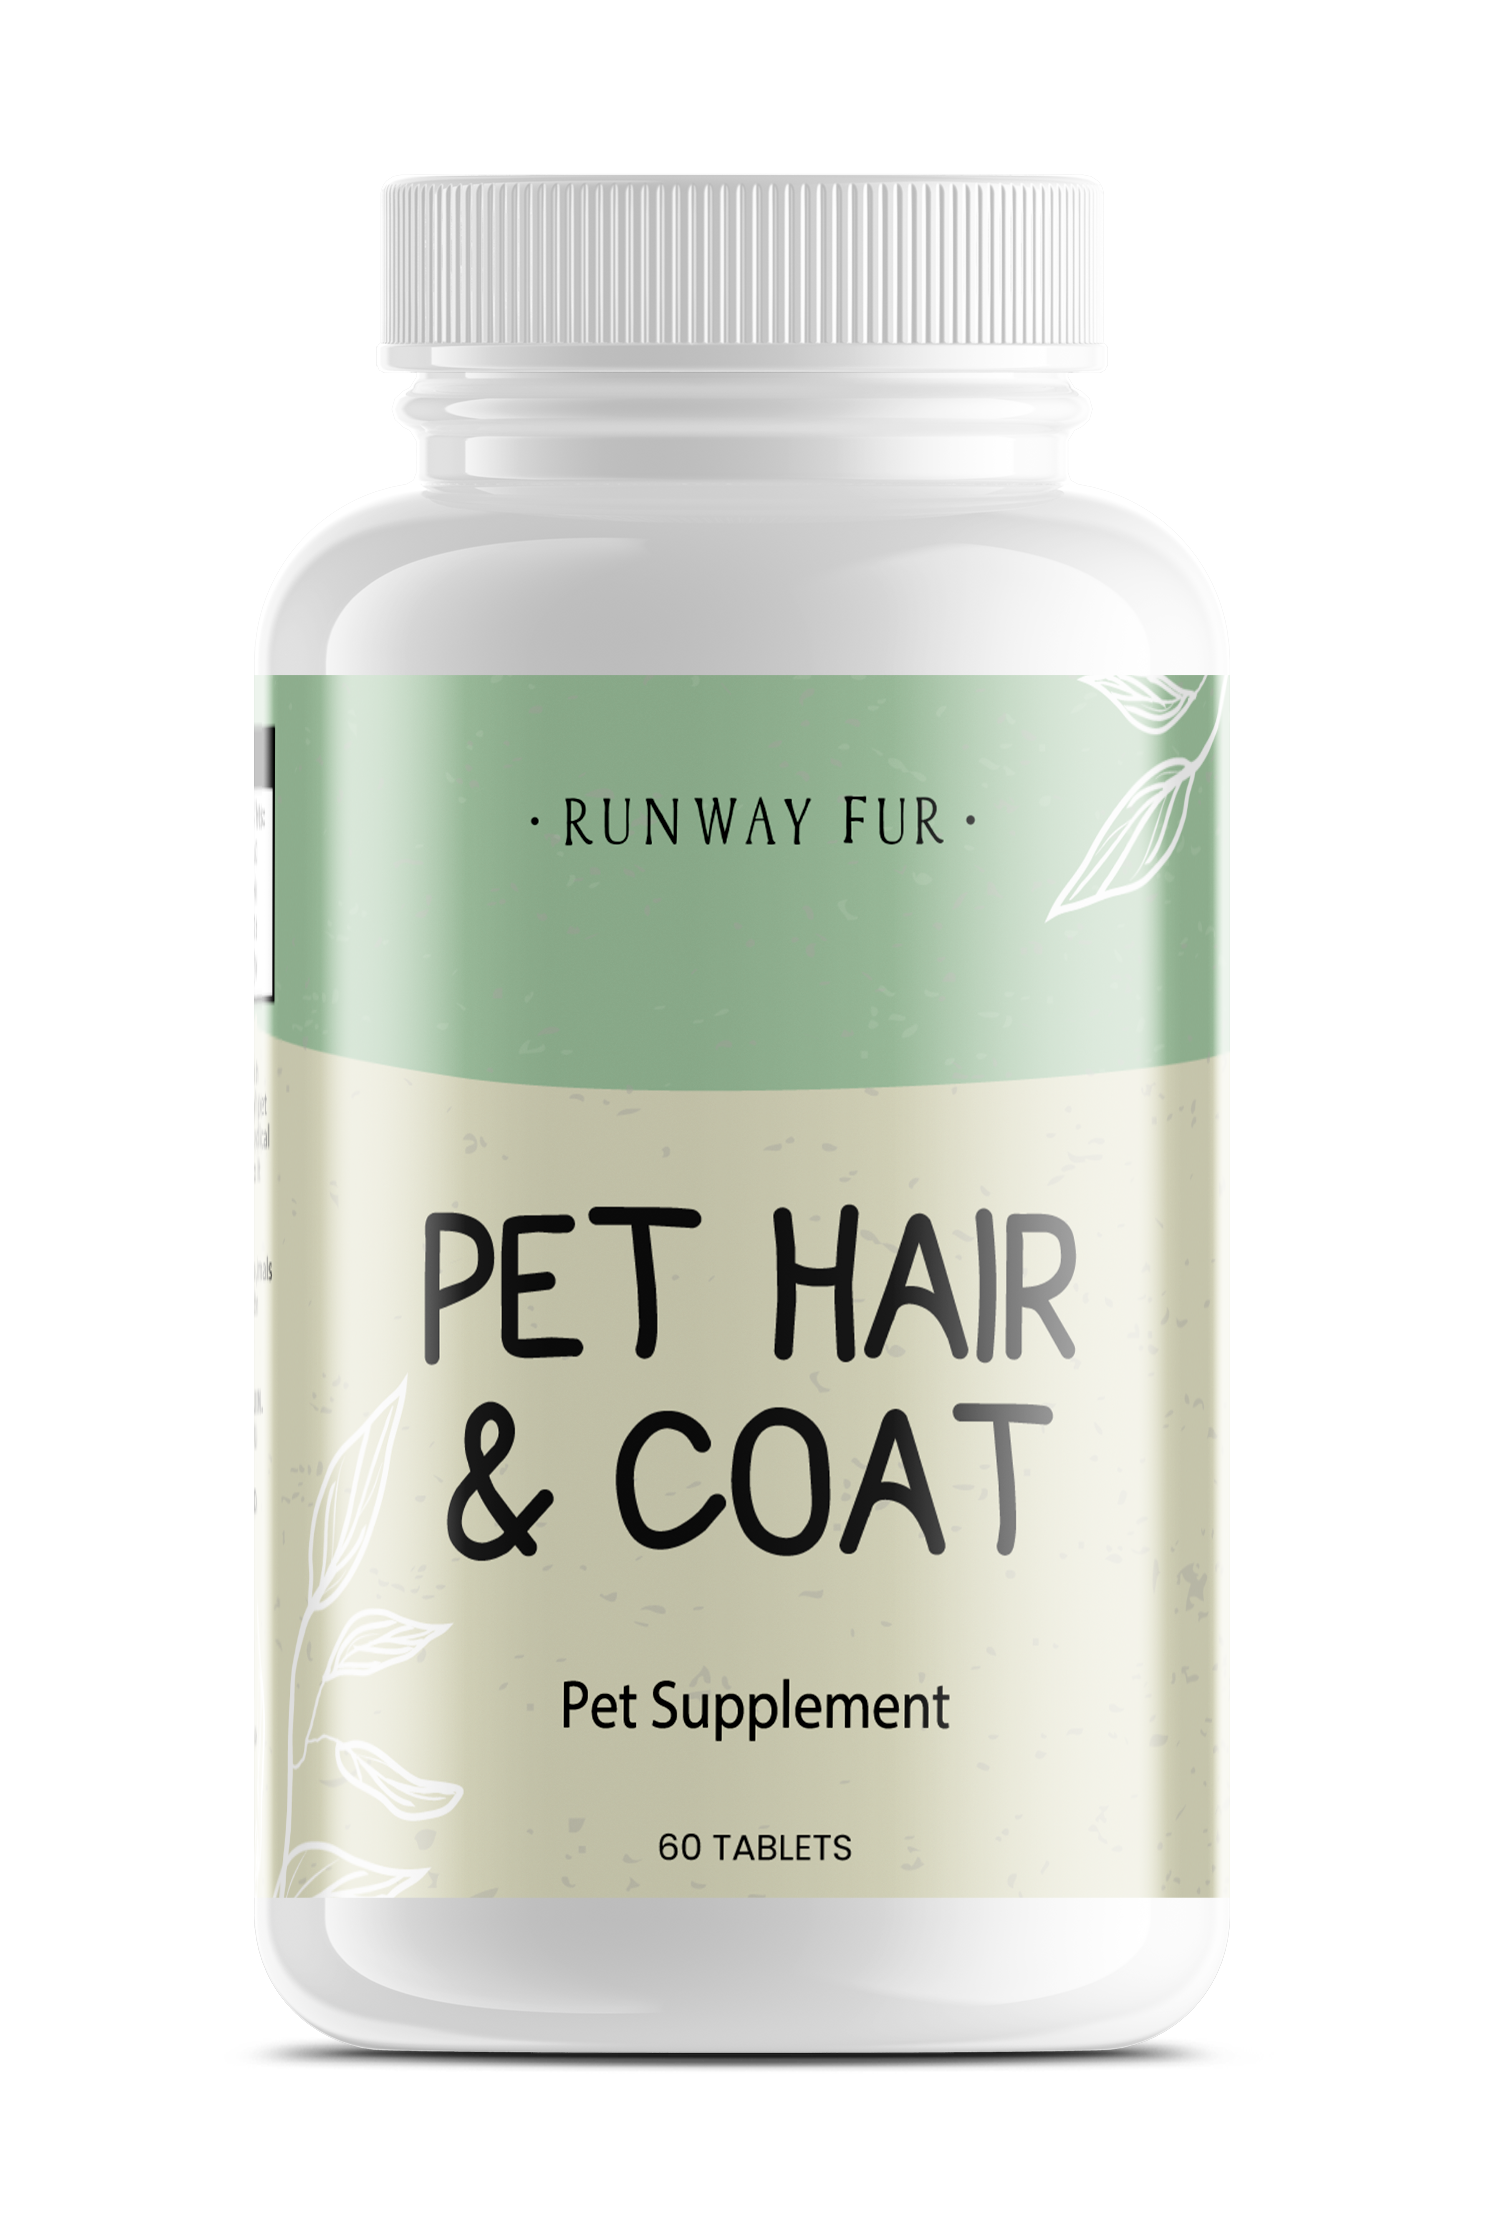 Runway Fur Pet Hair & Coat Supplement